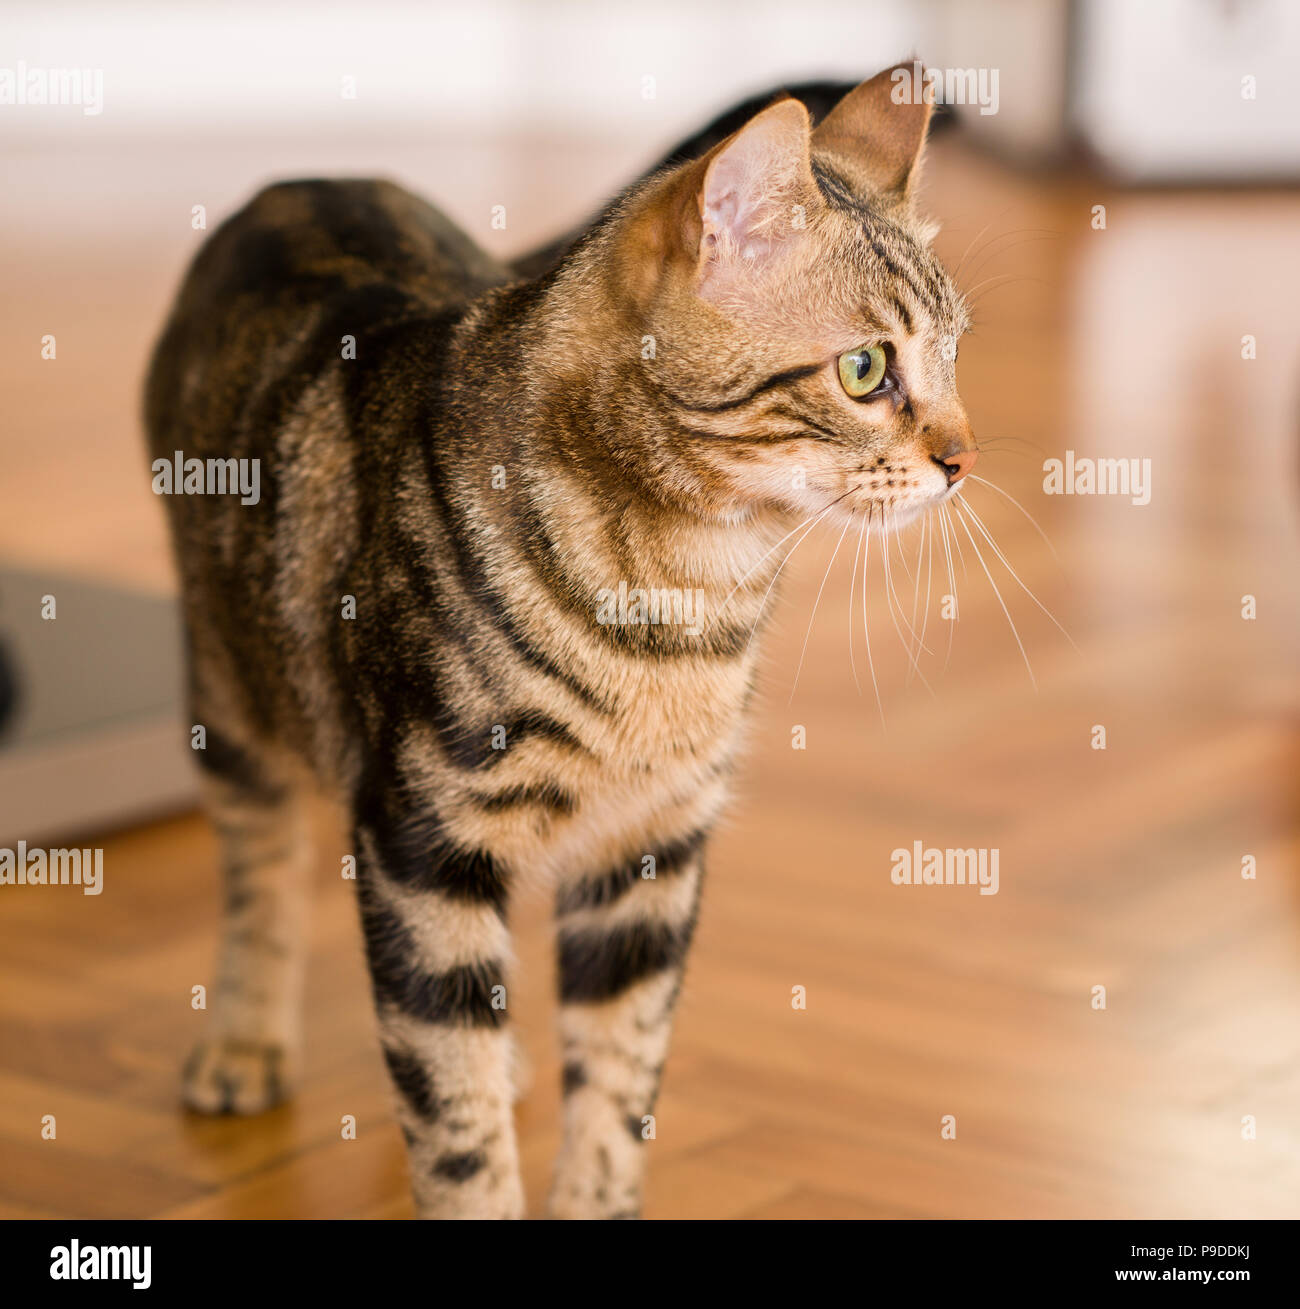 Domestic cat at home Stock Photo